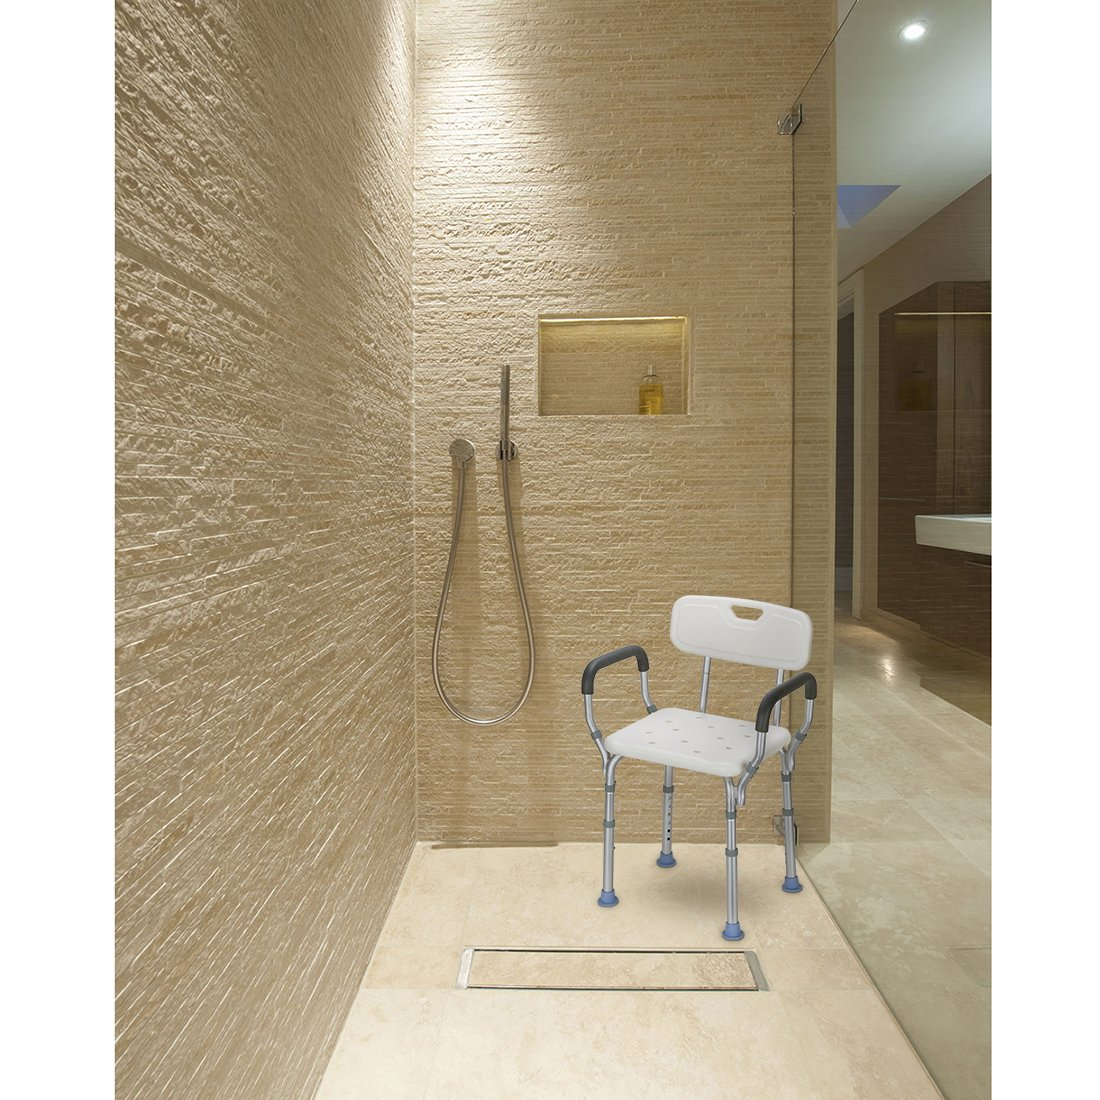 Amazon.com: OasisSpace Heavy Duty Shower Chair with Back - Bathtub ...